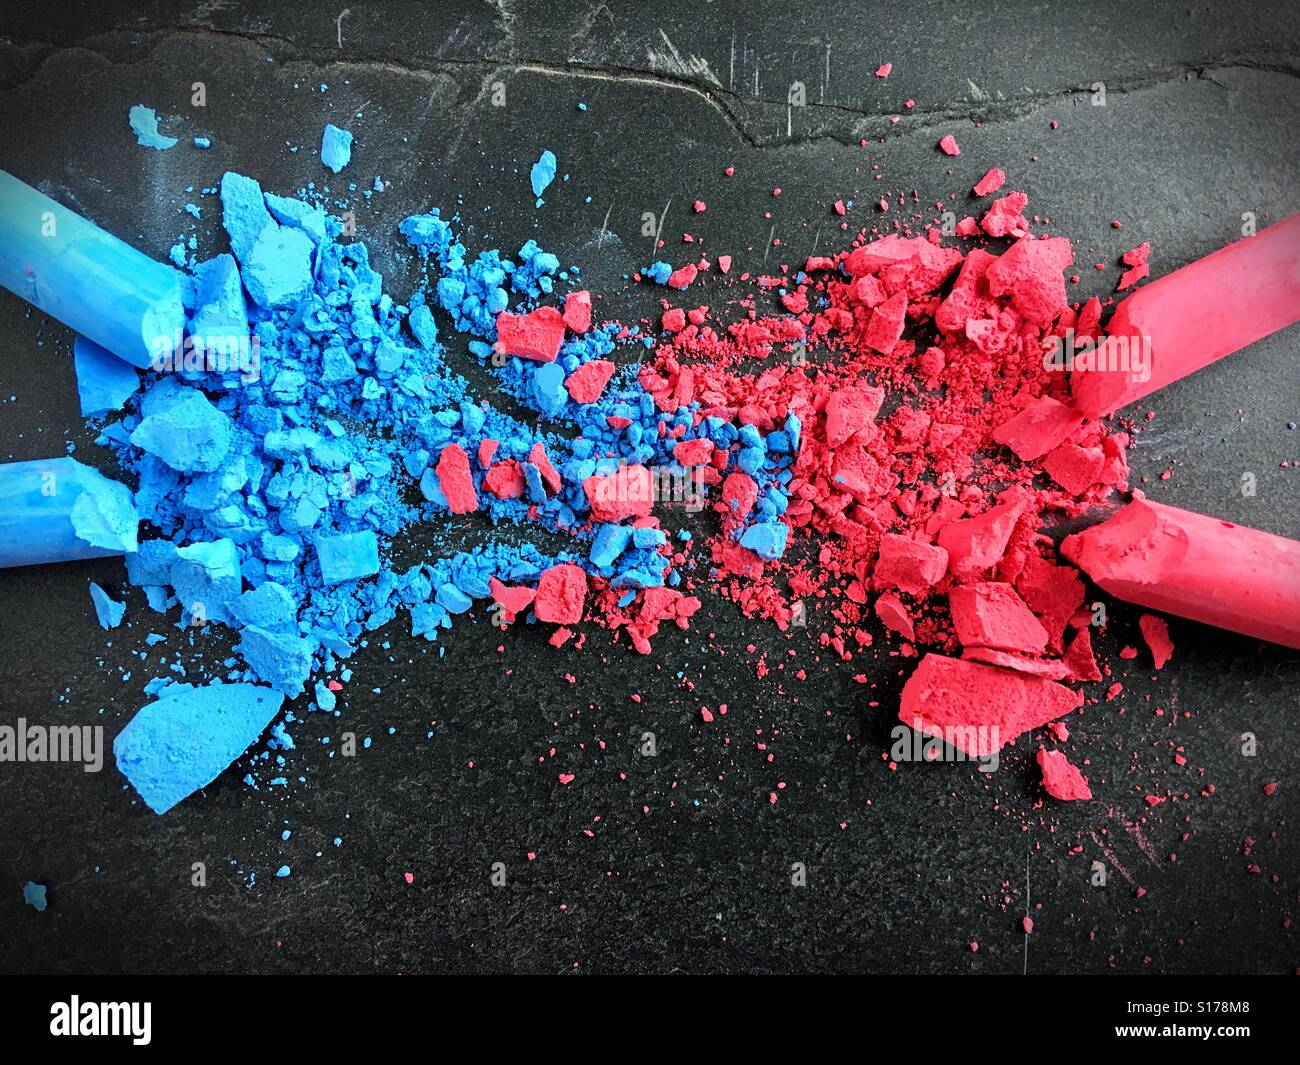 A mix of pink and blue chalk dust. - Stock Image